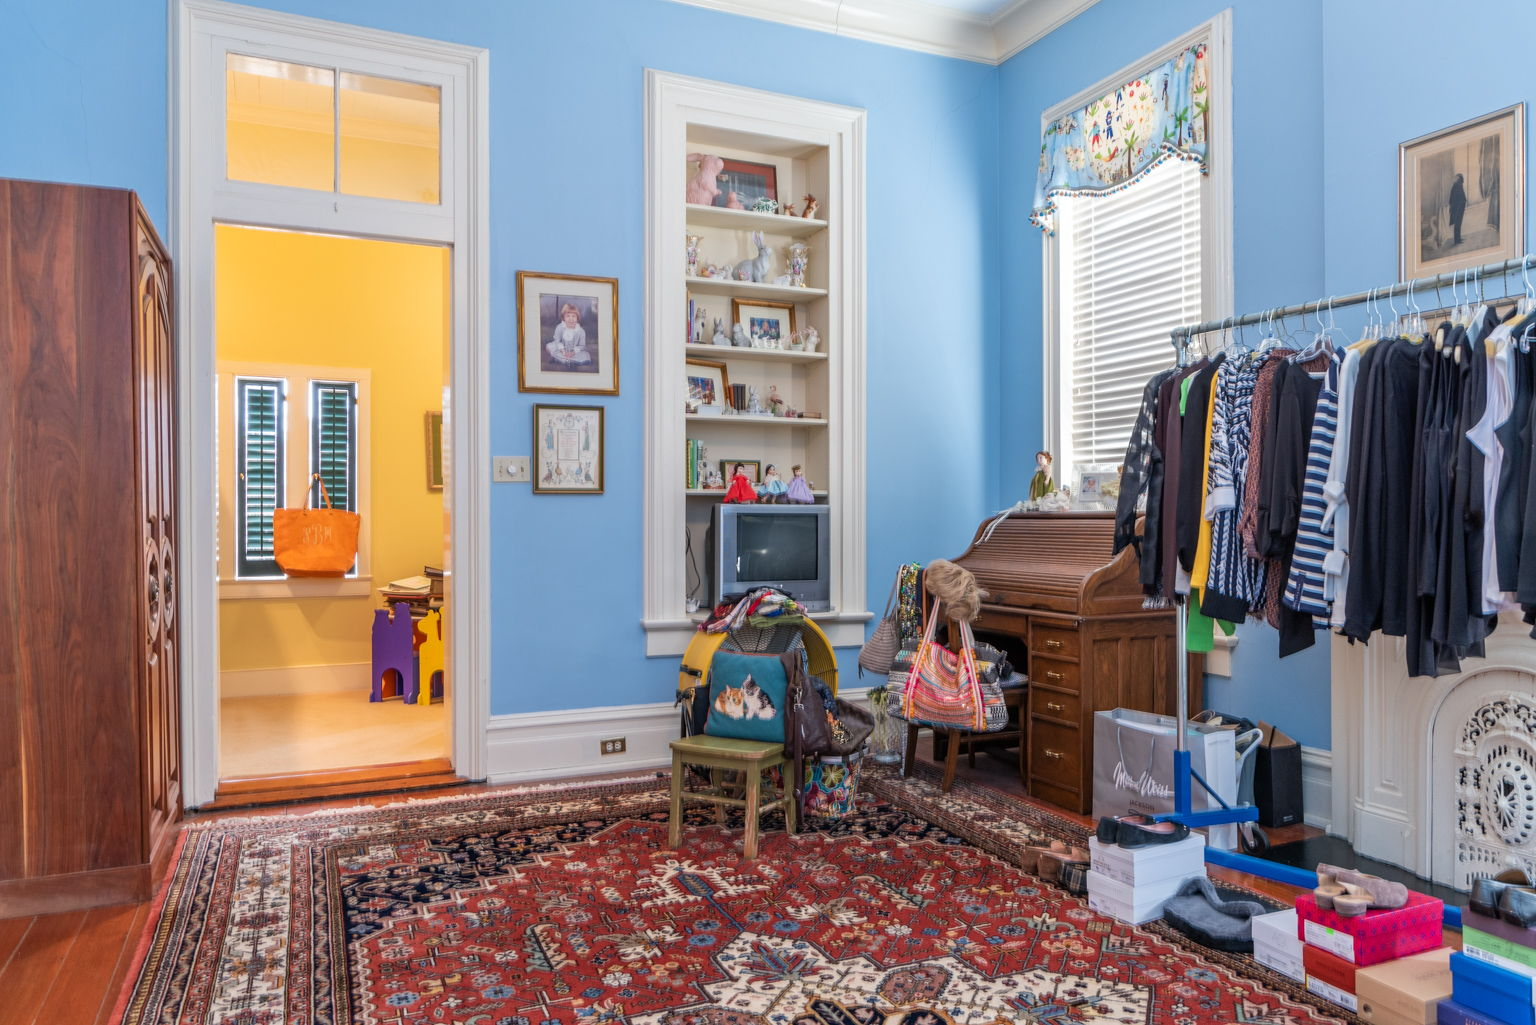 And the back guest room is used as a playroom